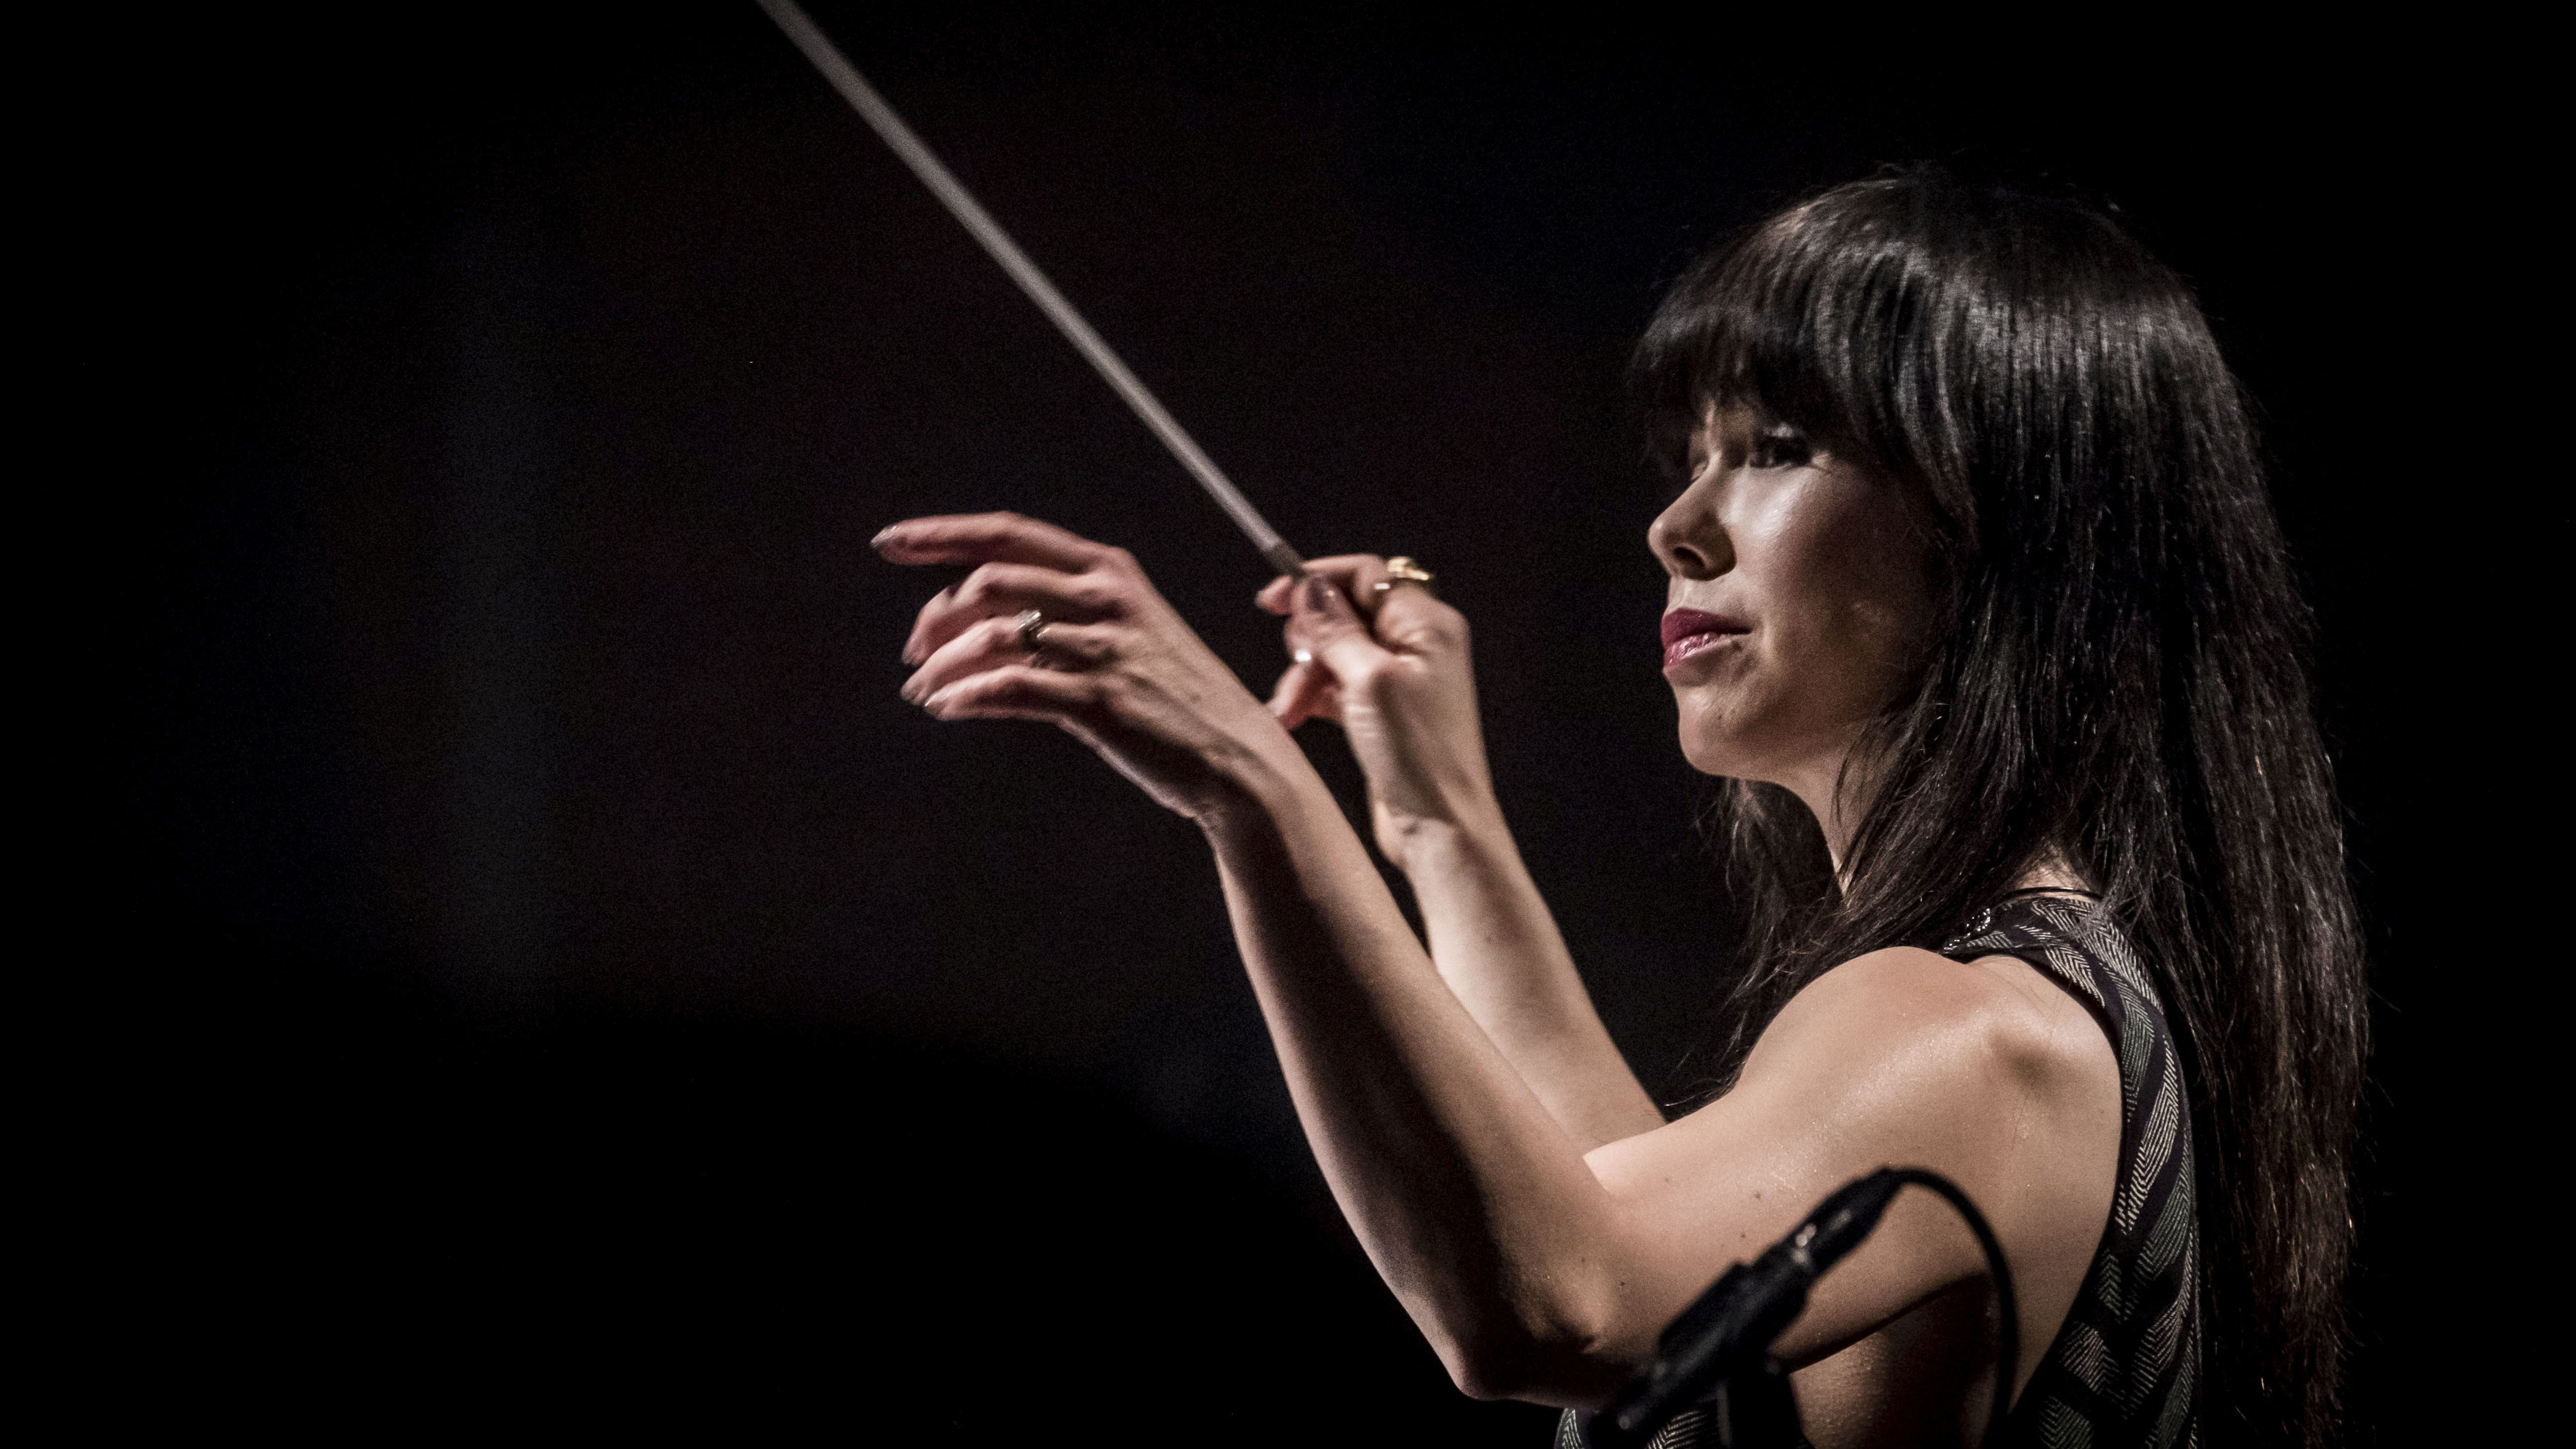 Sarah Hicks conducts the music of Ennio Morricone with the Danish National Symphony Orchestra in January 2018.